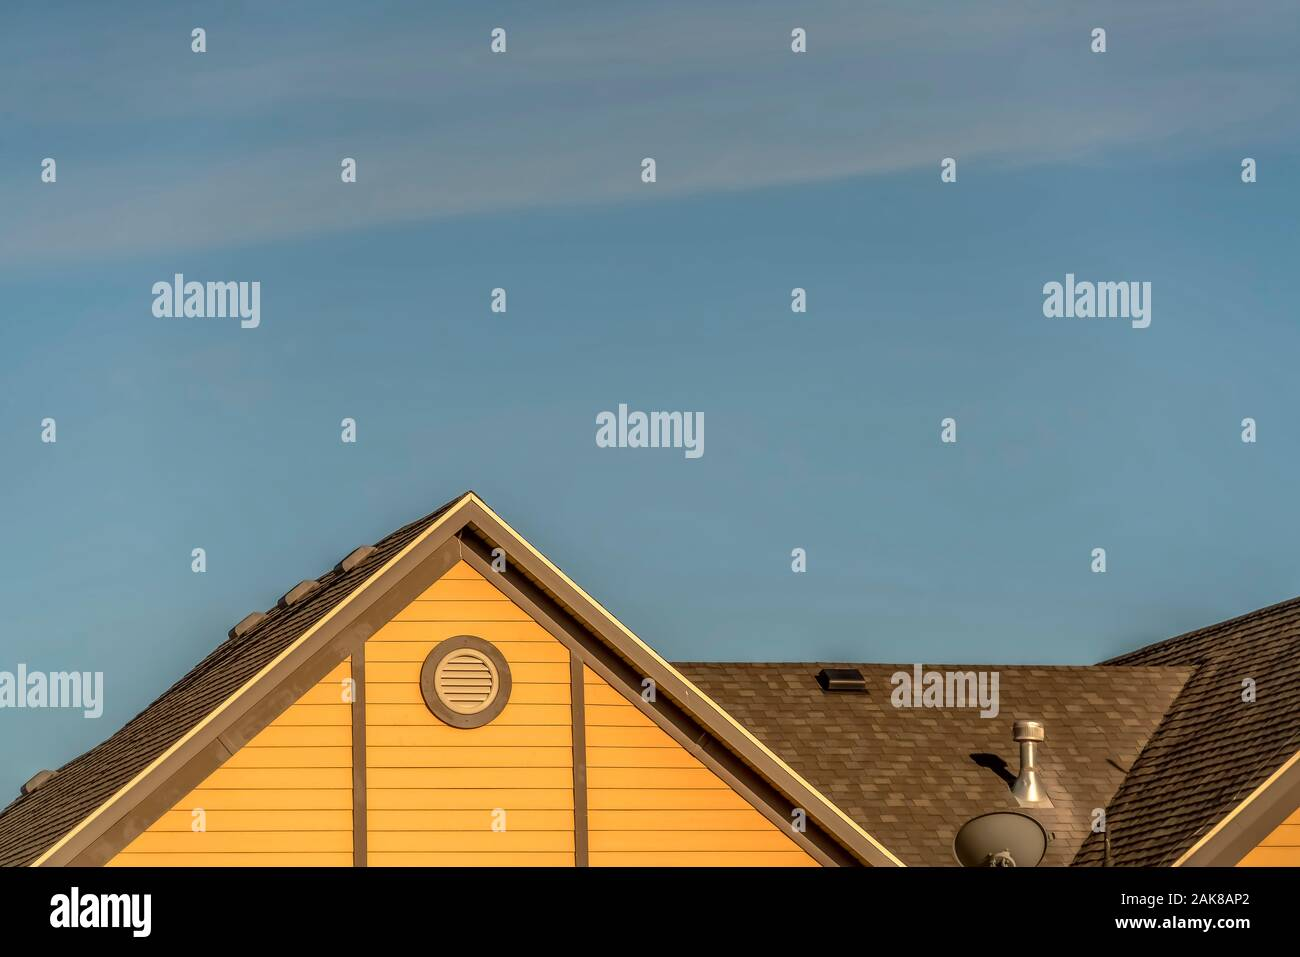 house exterior with roof shingles and round gable window against blue sky 2AK8AP2